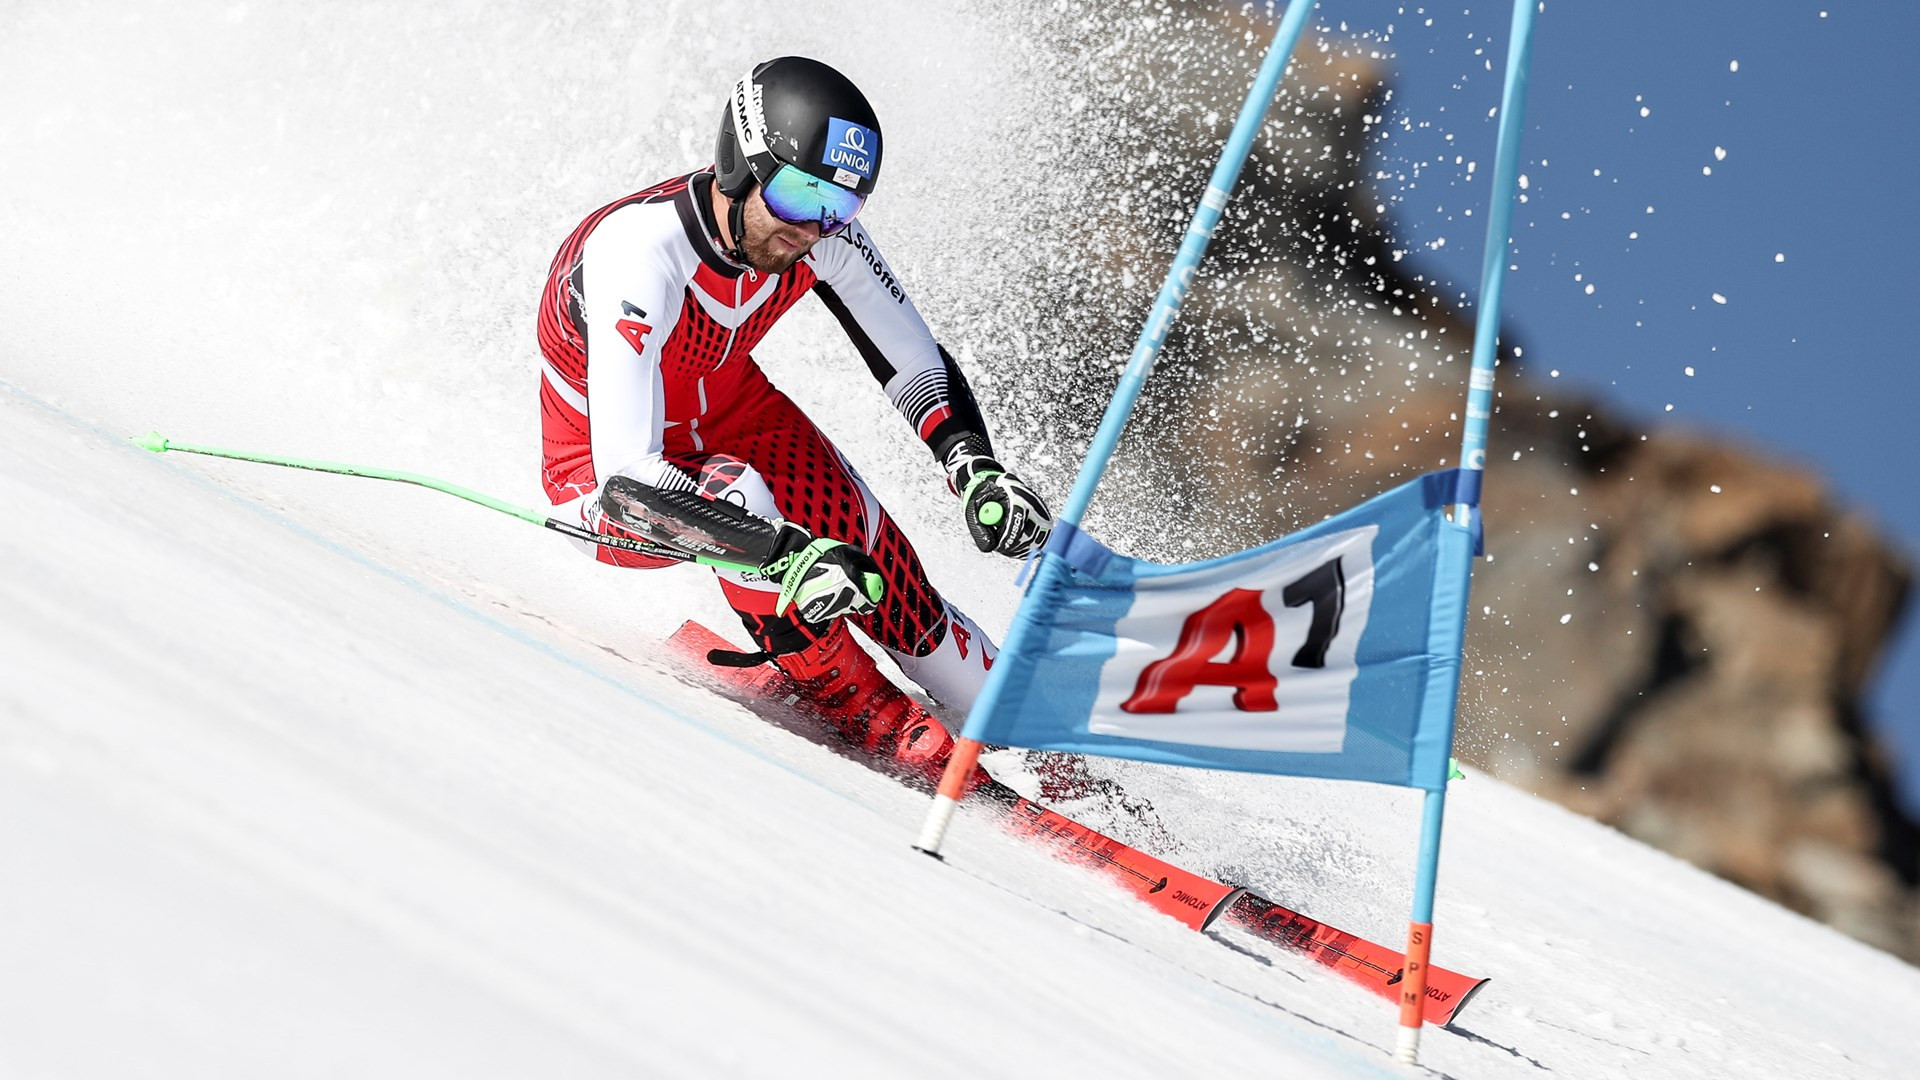 Exclusive training session held for Austrians a month before Ski World Cup